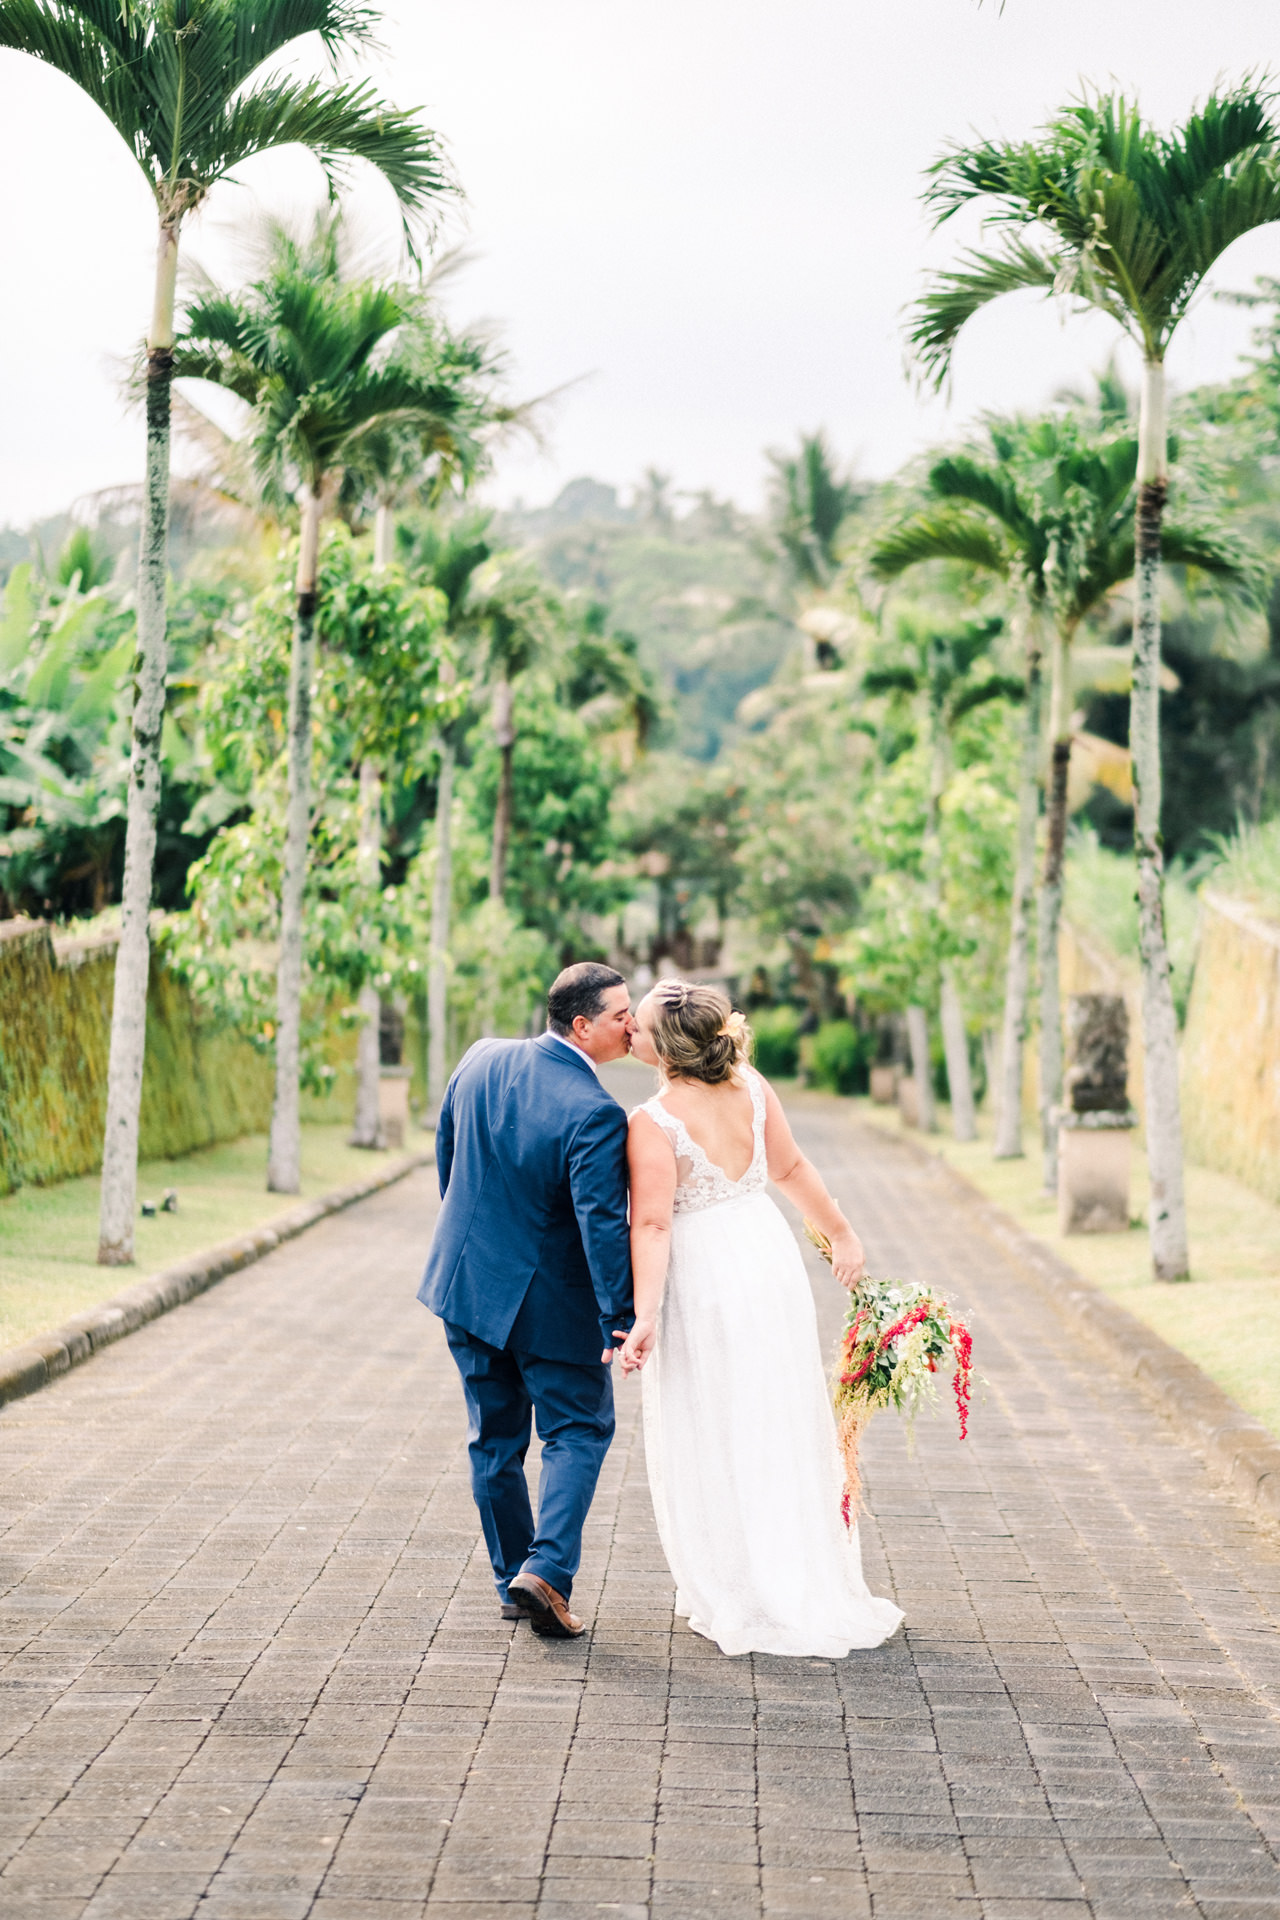 K&F: Bali Wedding at Puri Wulandari Ubud 29